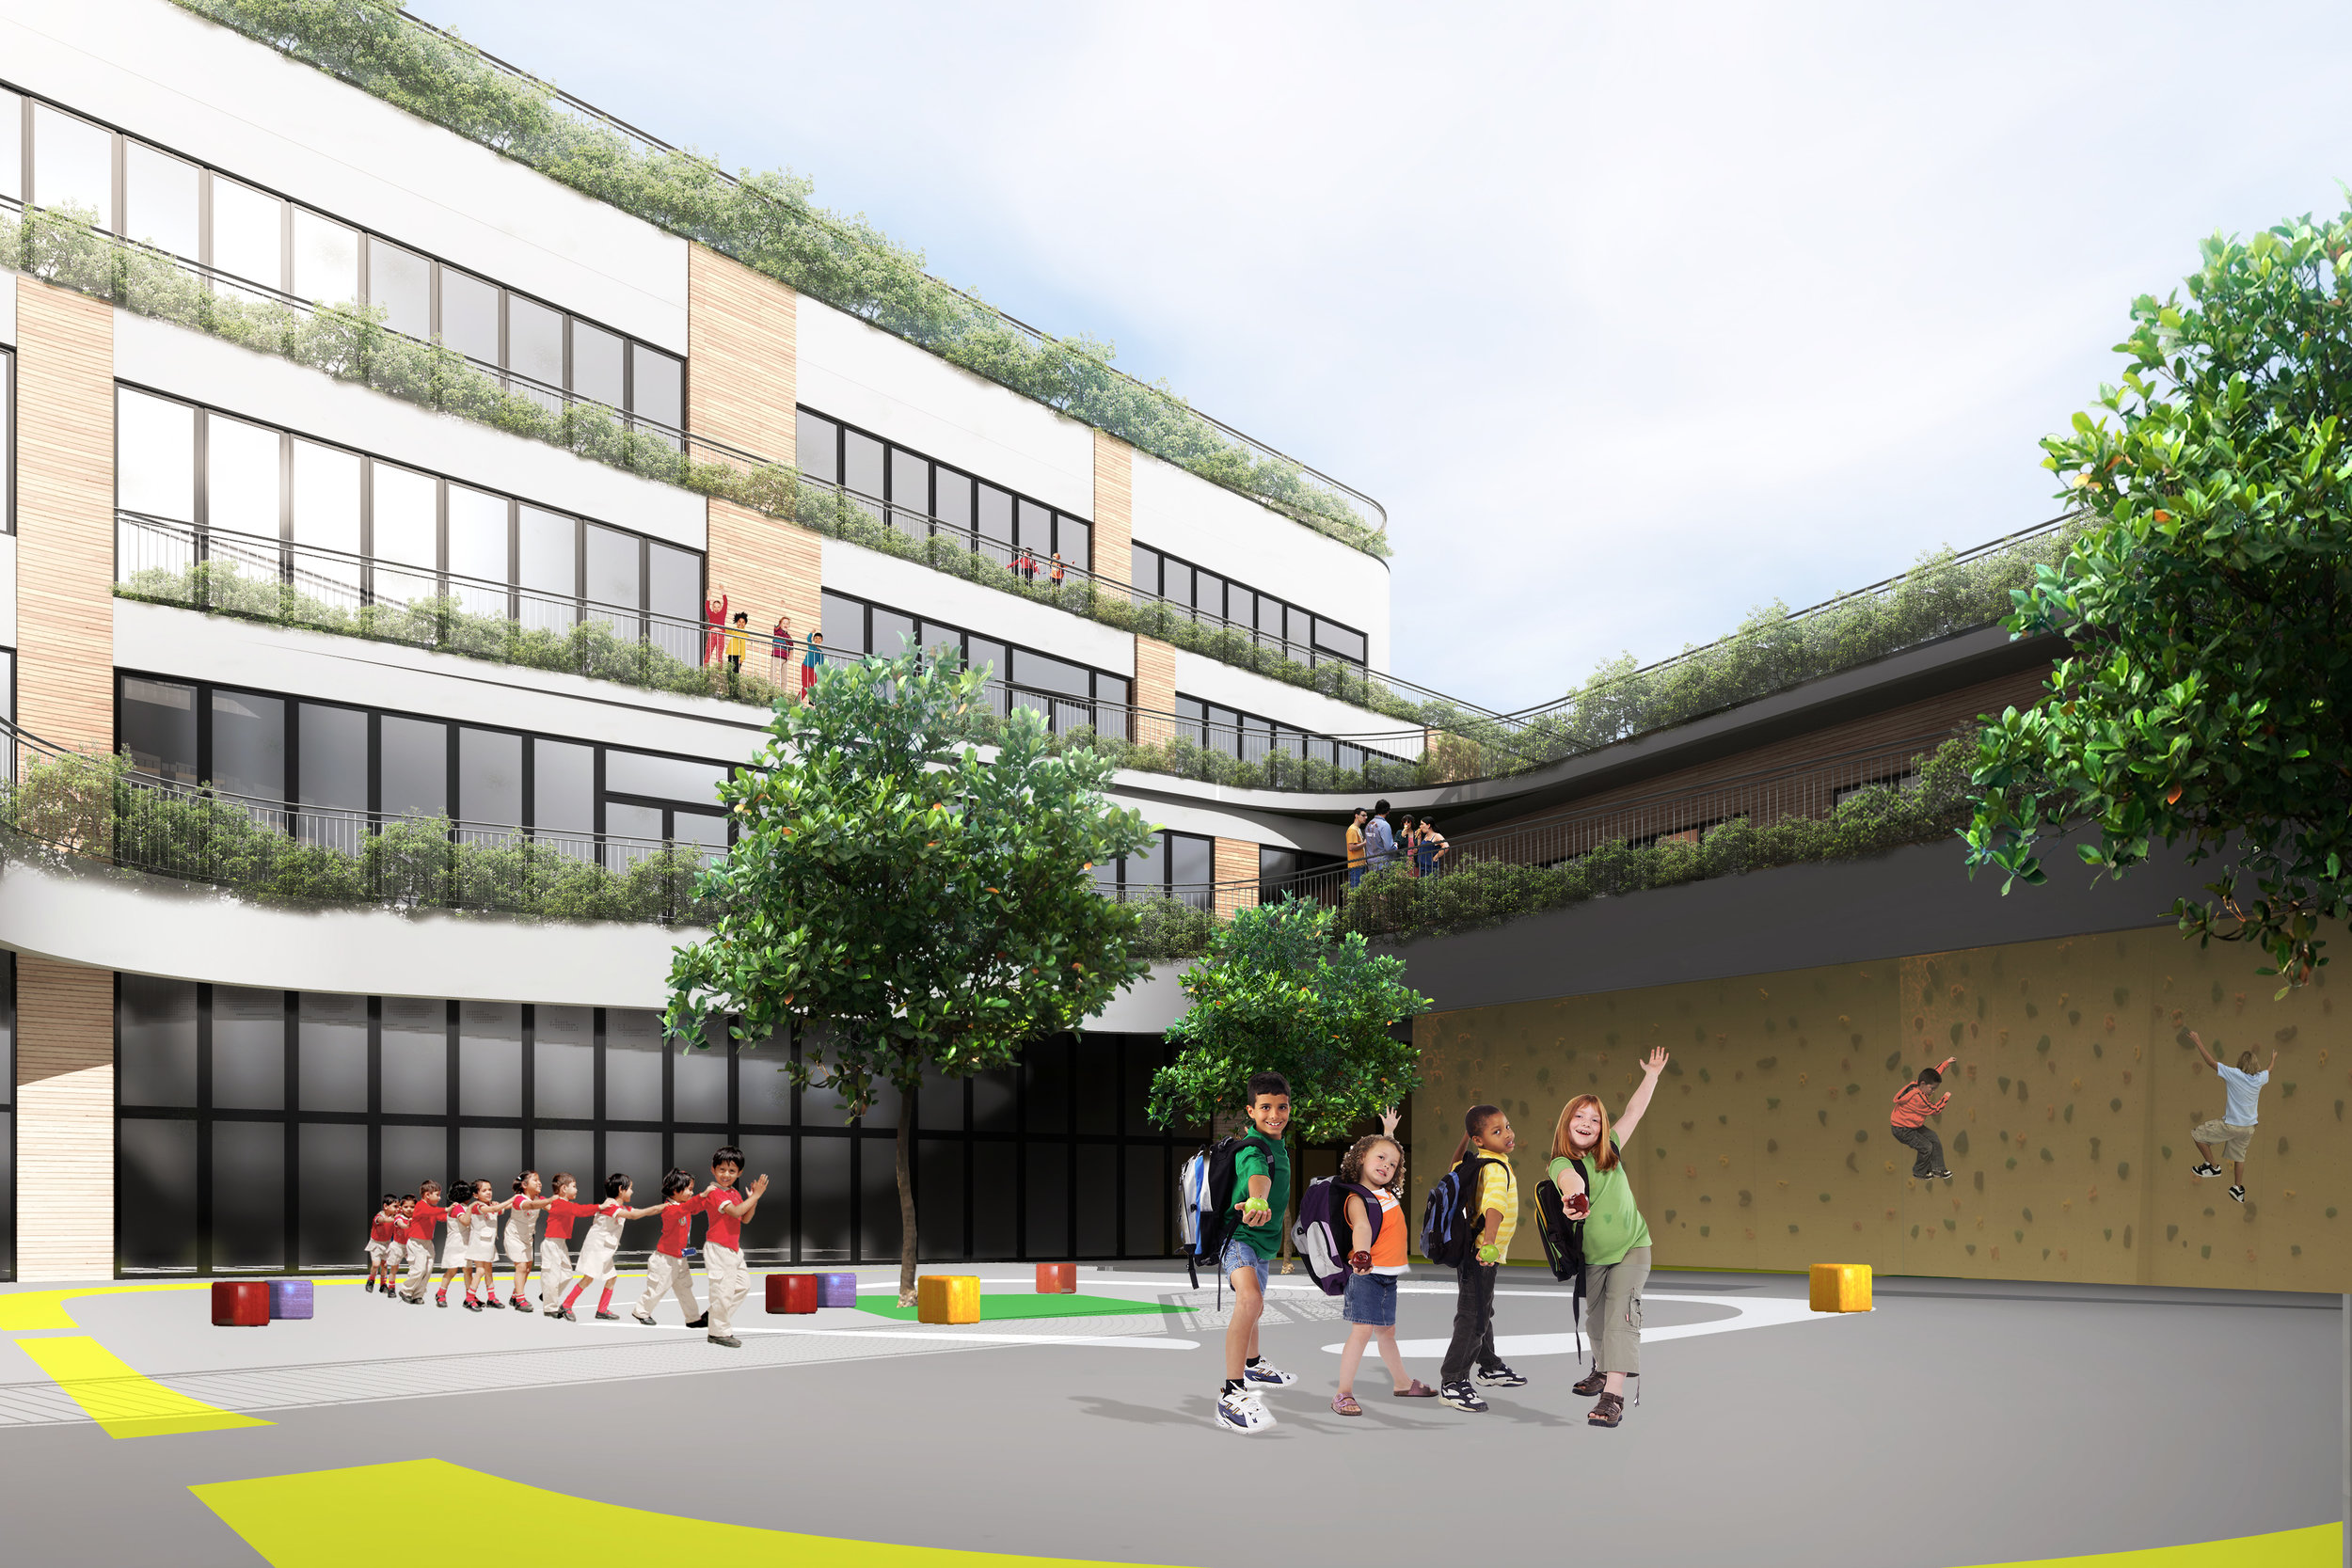 Primary school - Year: 2015Location: Dublin, IrelandClient: Ireland's department of educationMain features: • Energy efficiency, Natural materials, Green roof. • Universal design- inclusion of persons with special needs